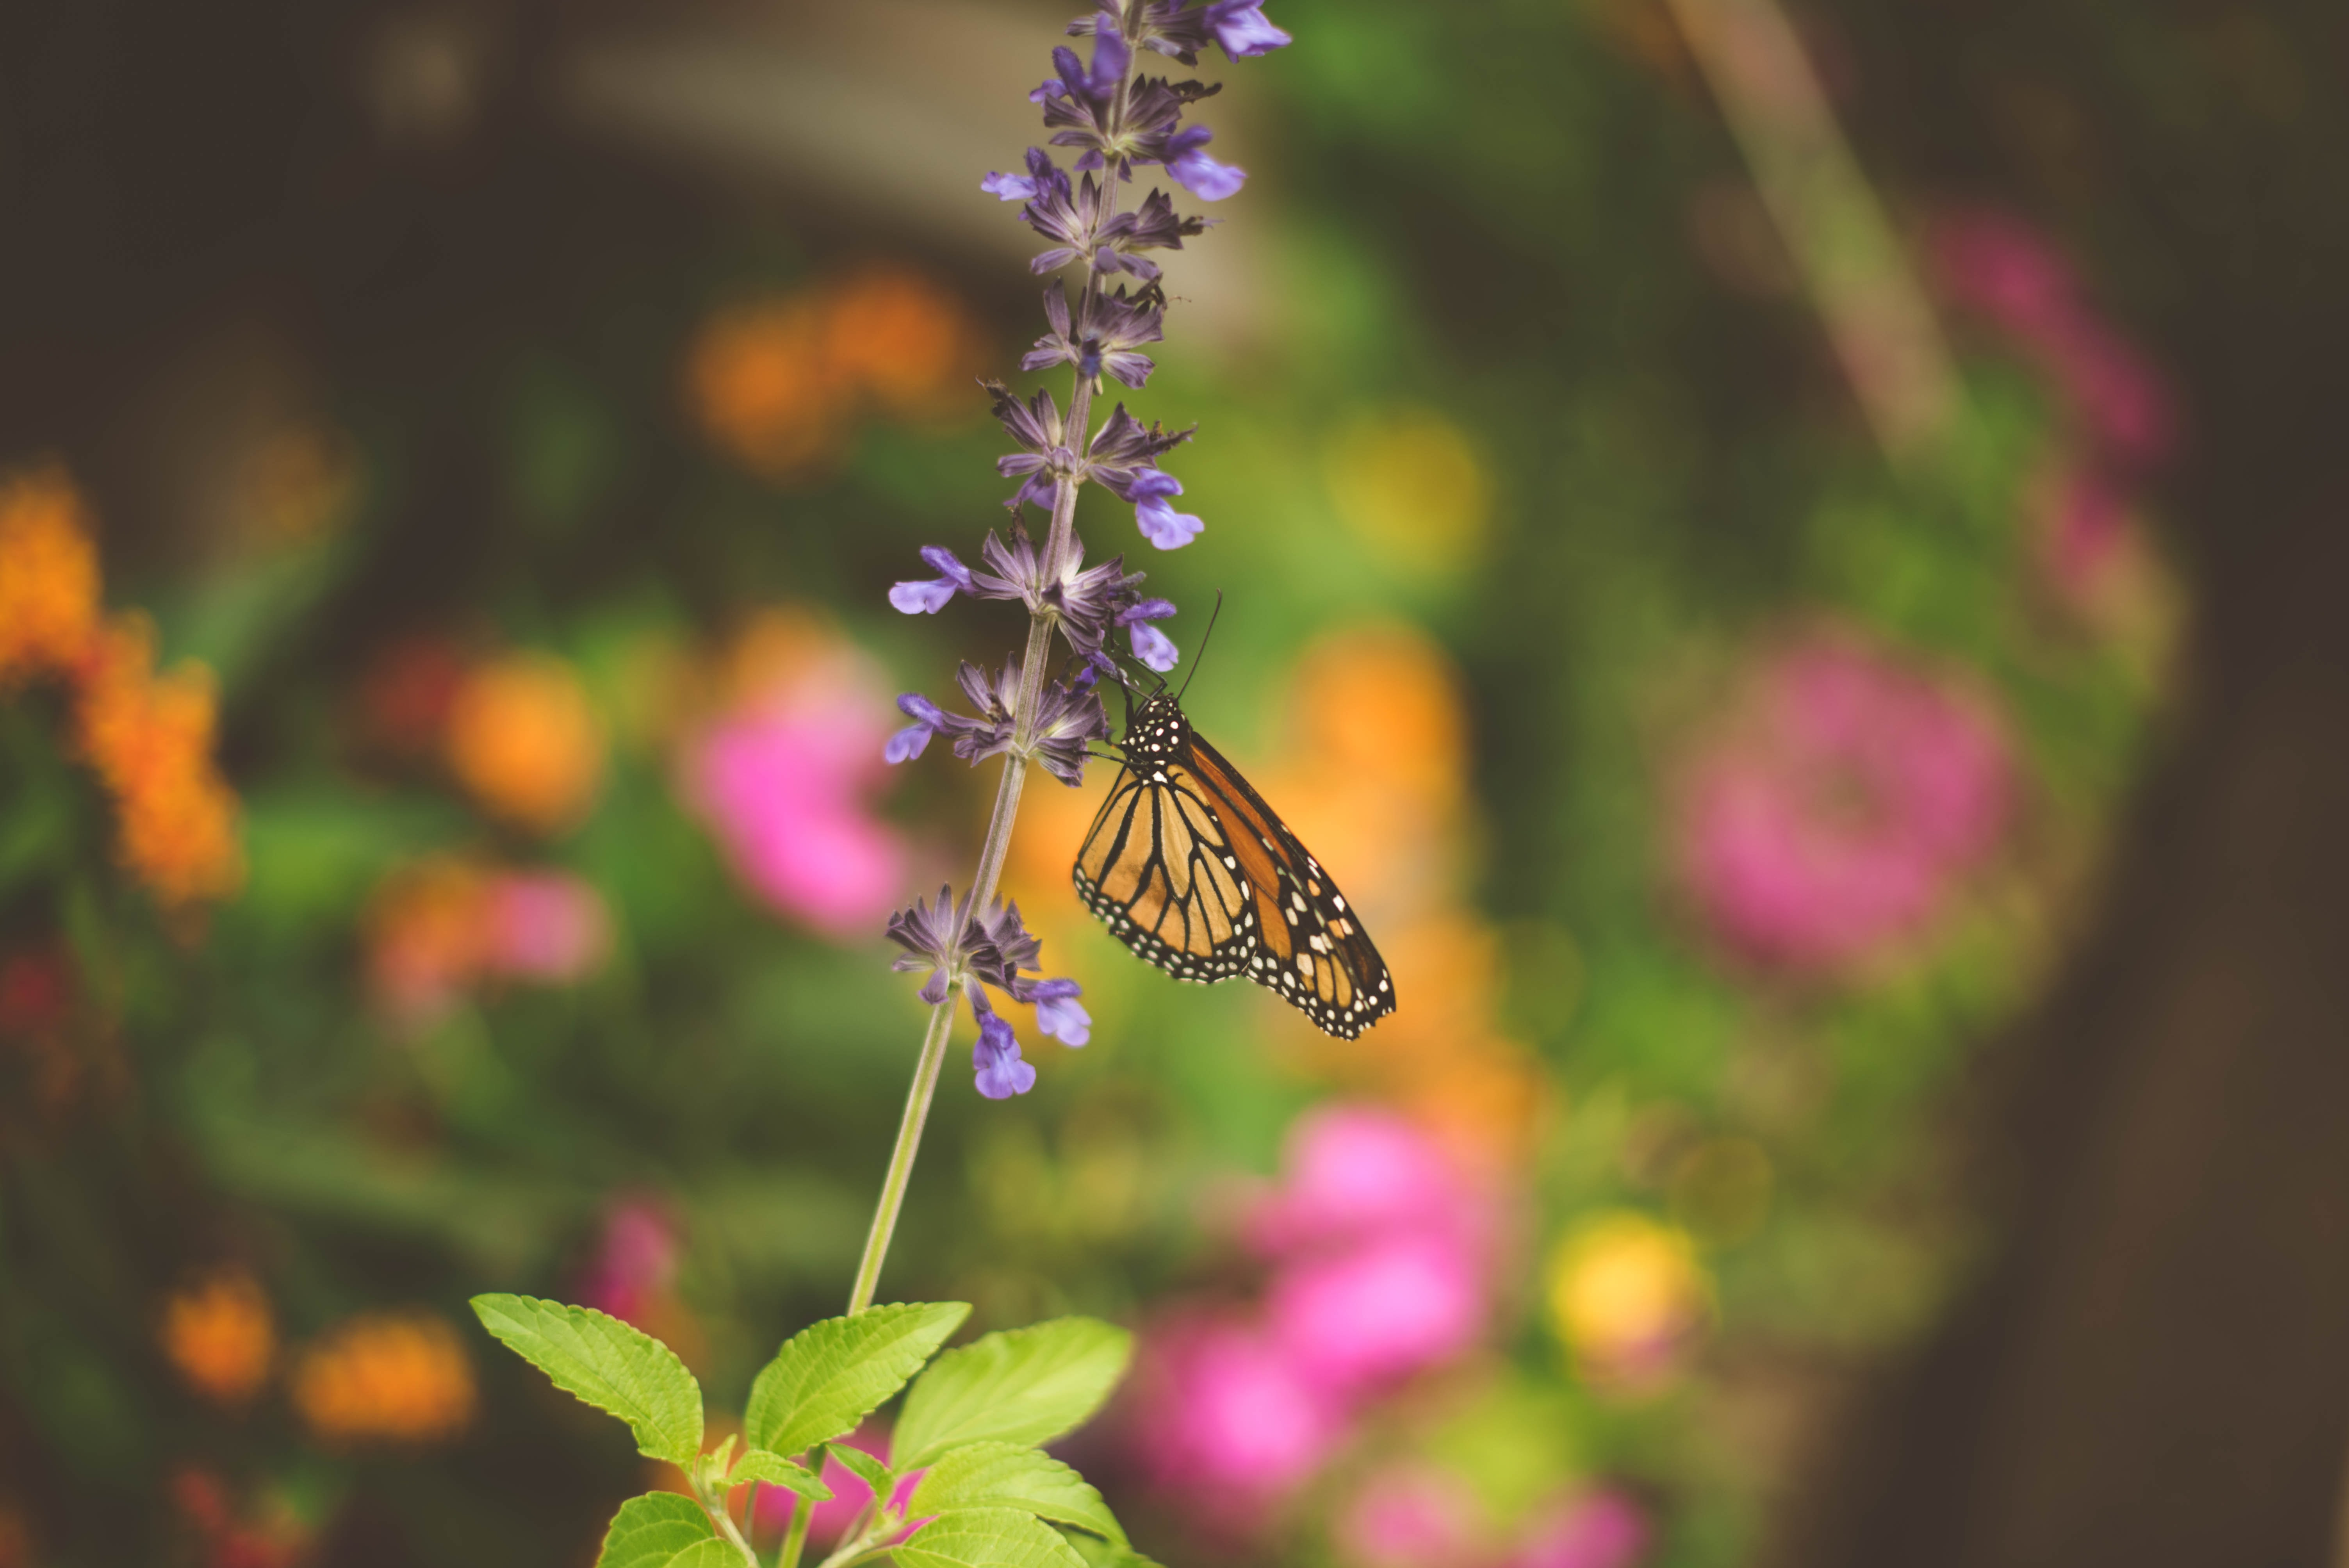 A monarch butterfly on lavender flowers